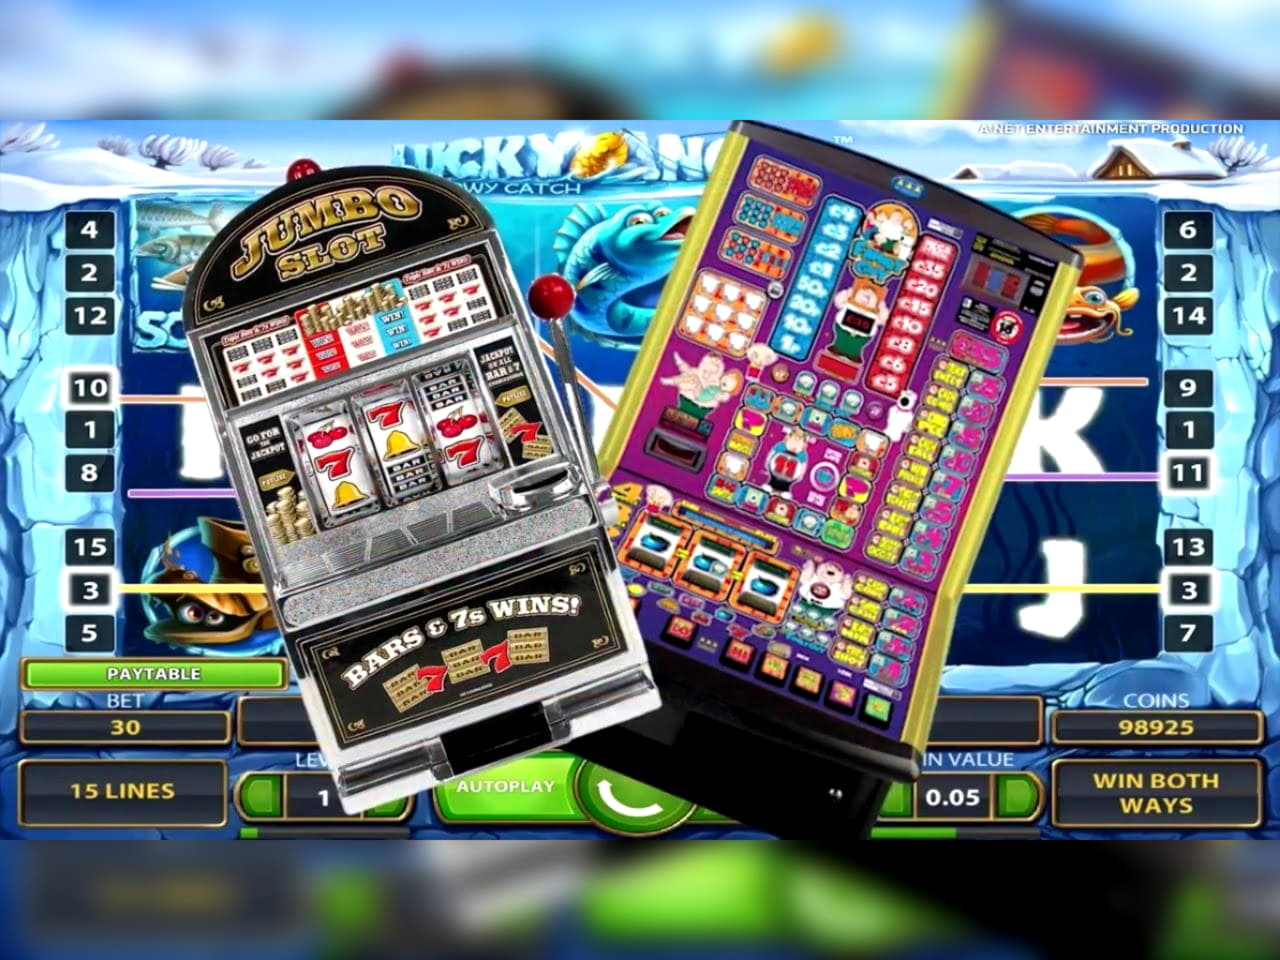 33 Free Spins right now at 777 Casino